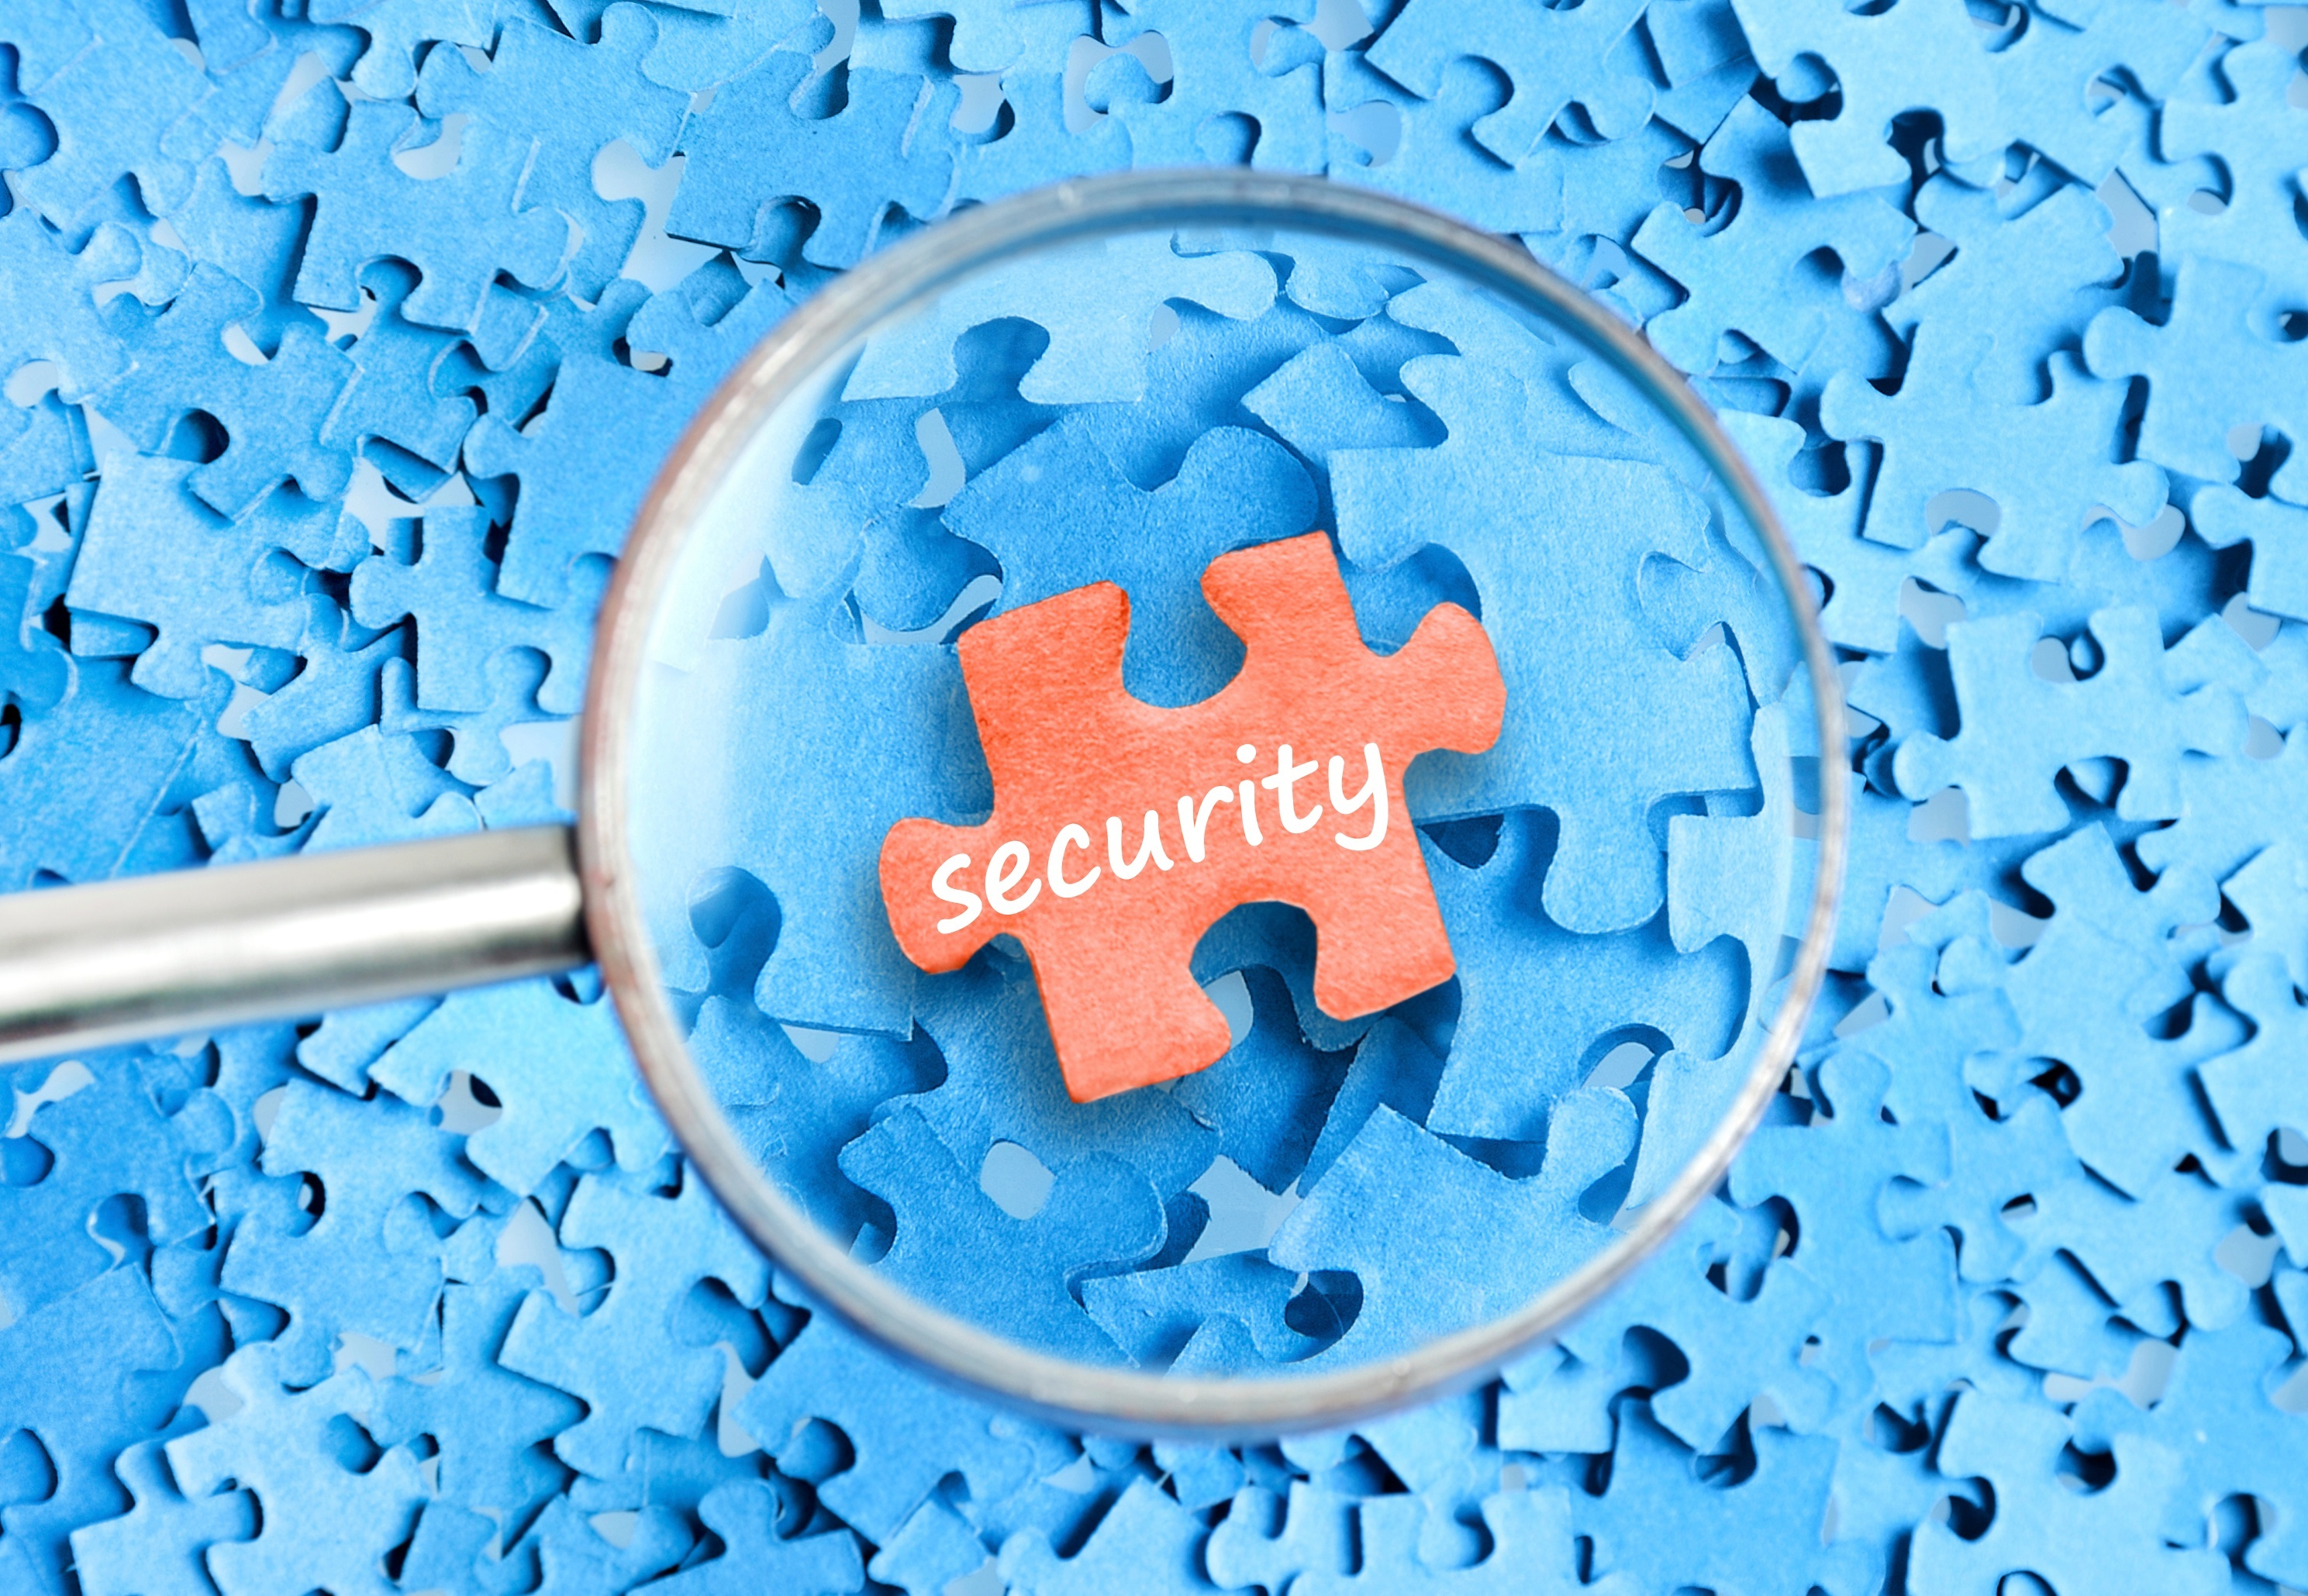 Cybersecurity_puzzle-1.jpg